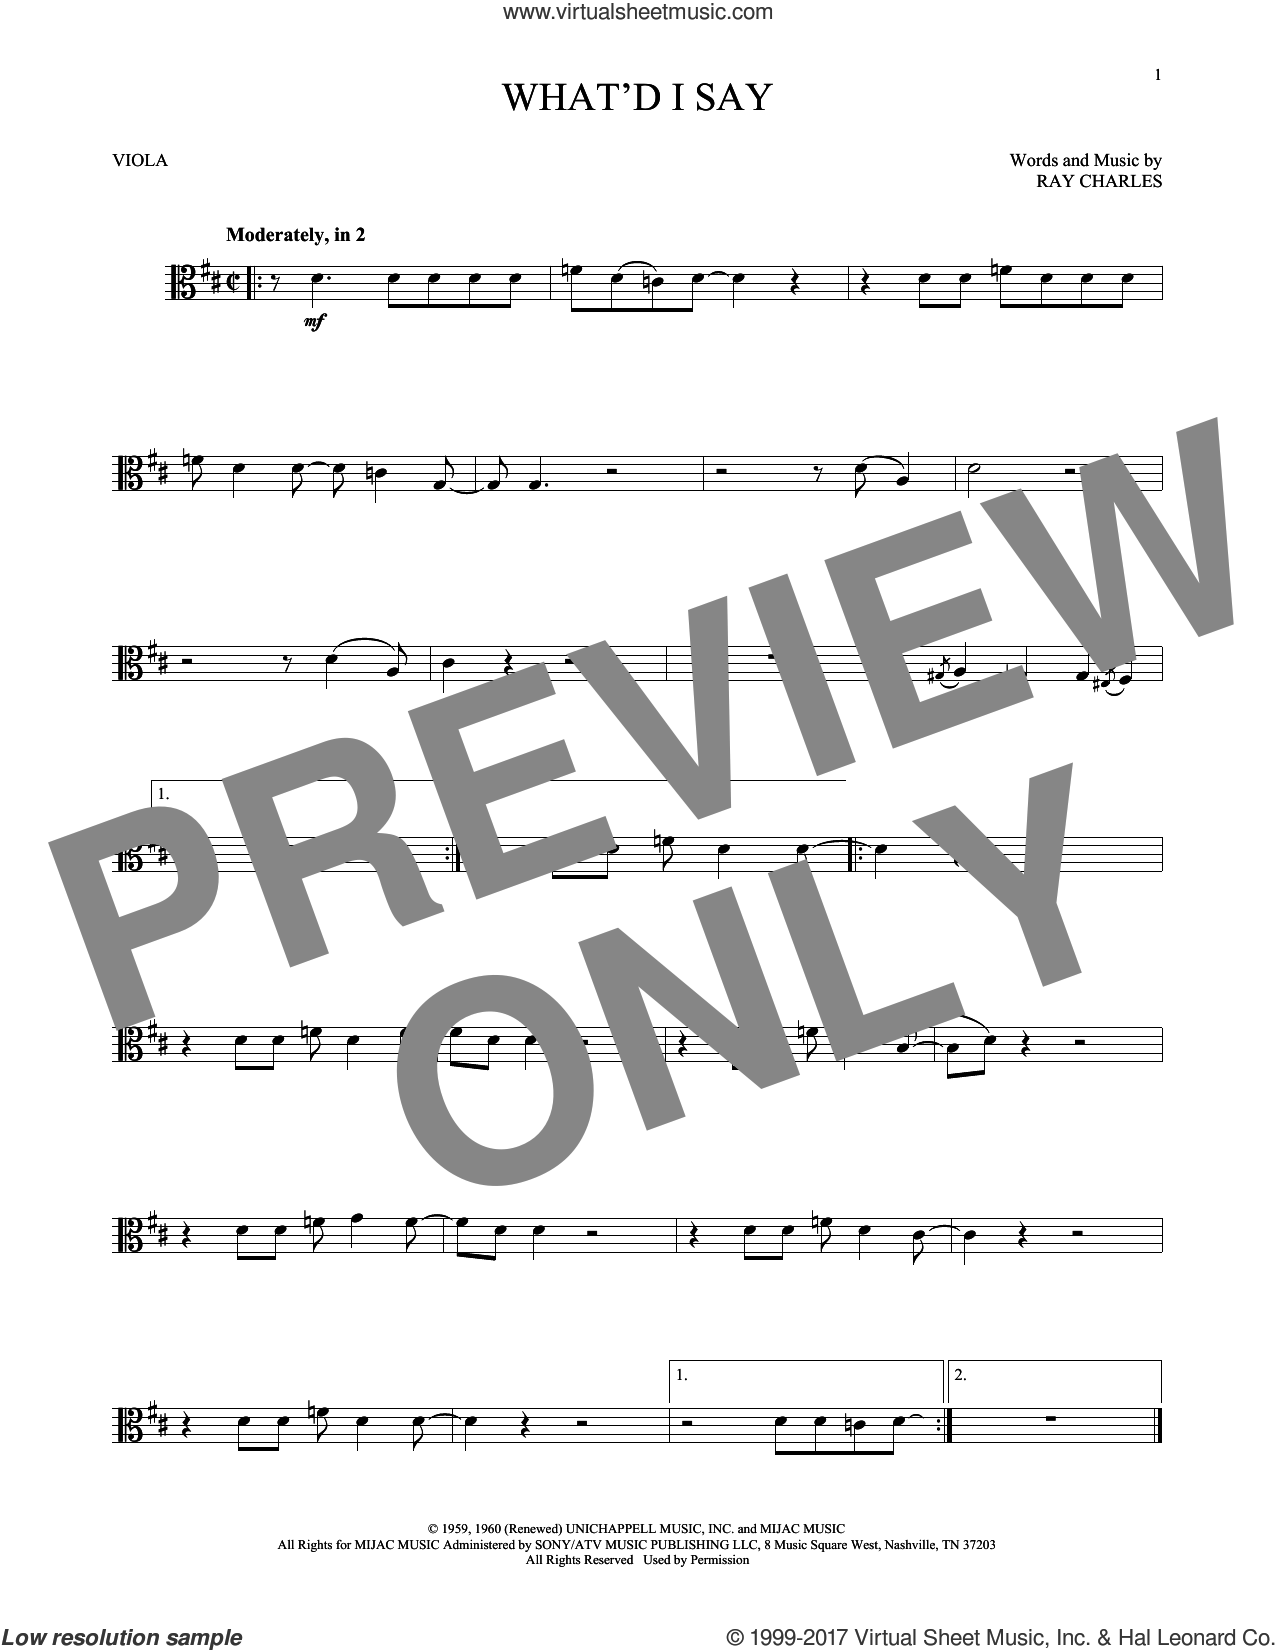 What'd I Say sheet music for viola solo by Ray Charles, intermediate skill level